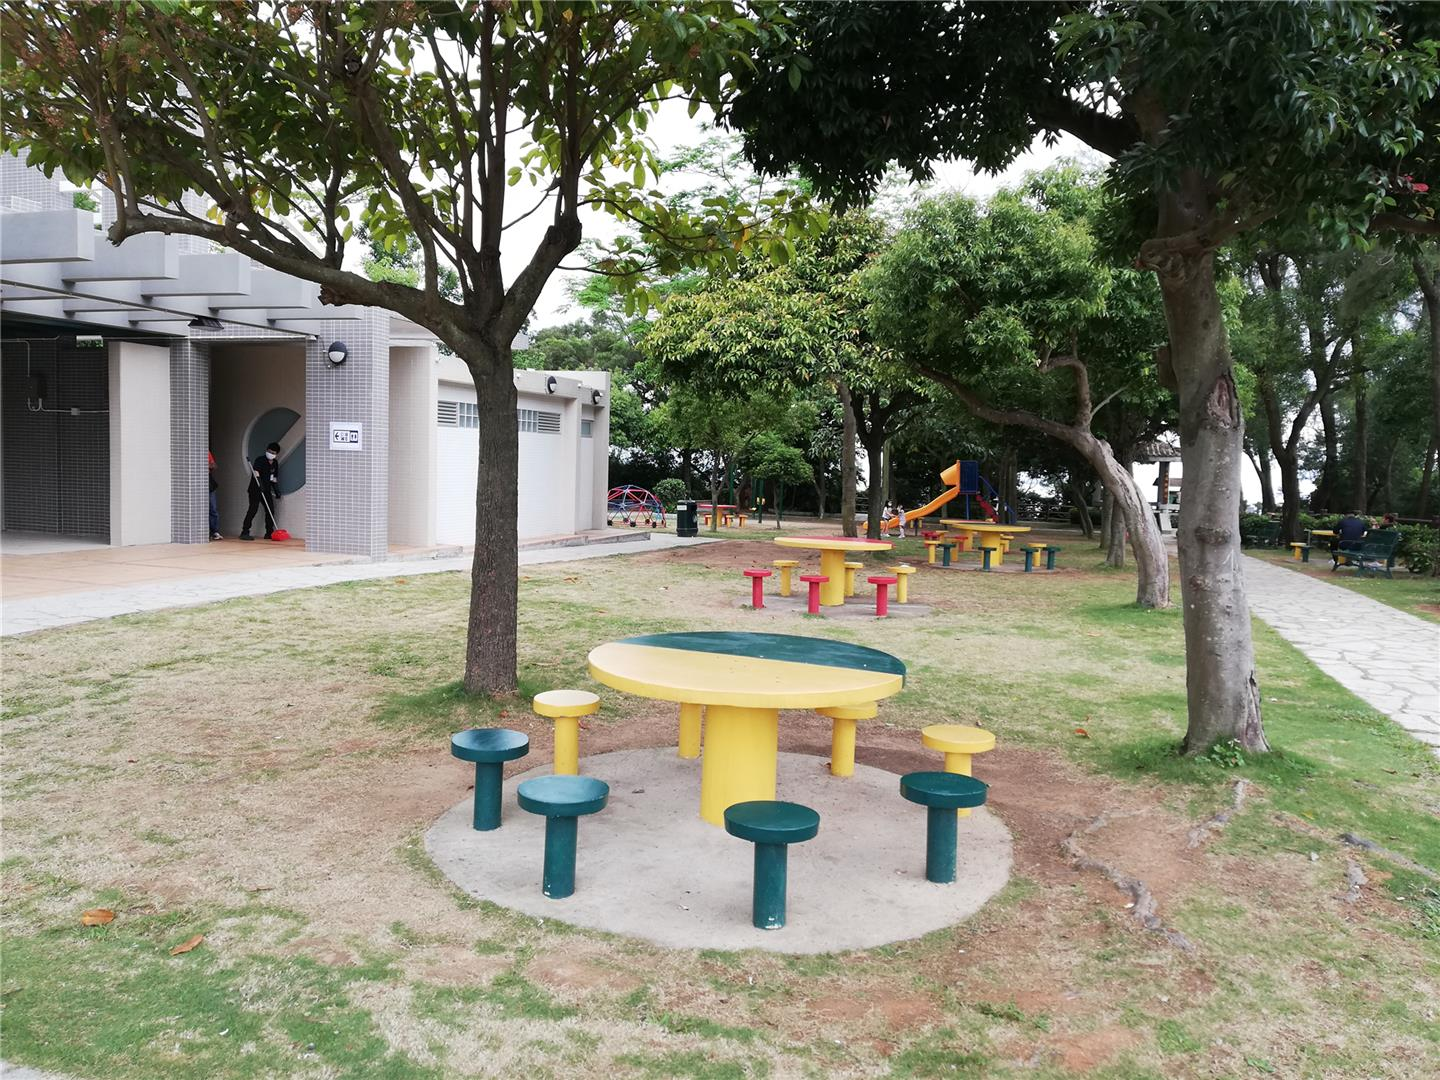 Coloane Height Park